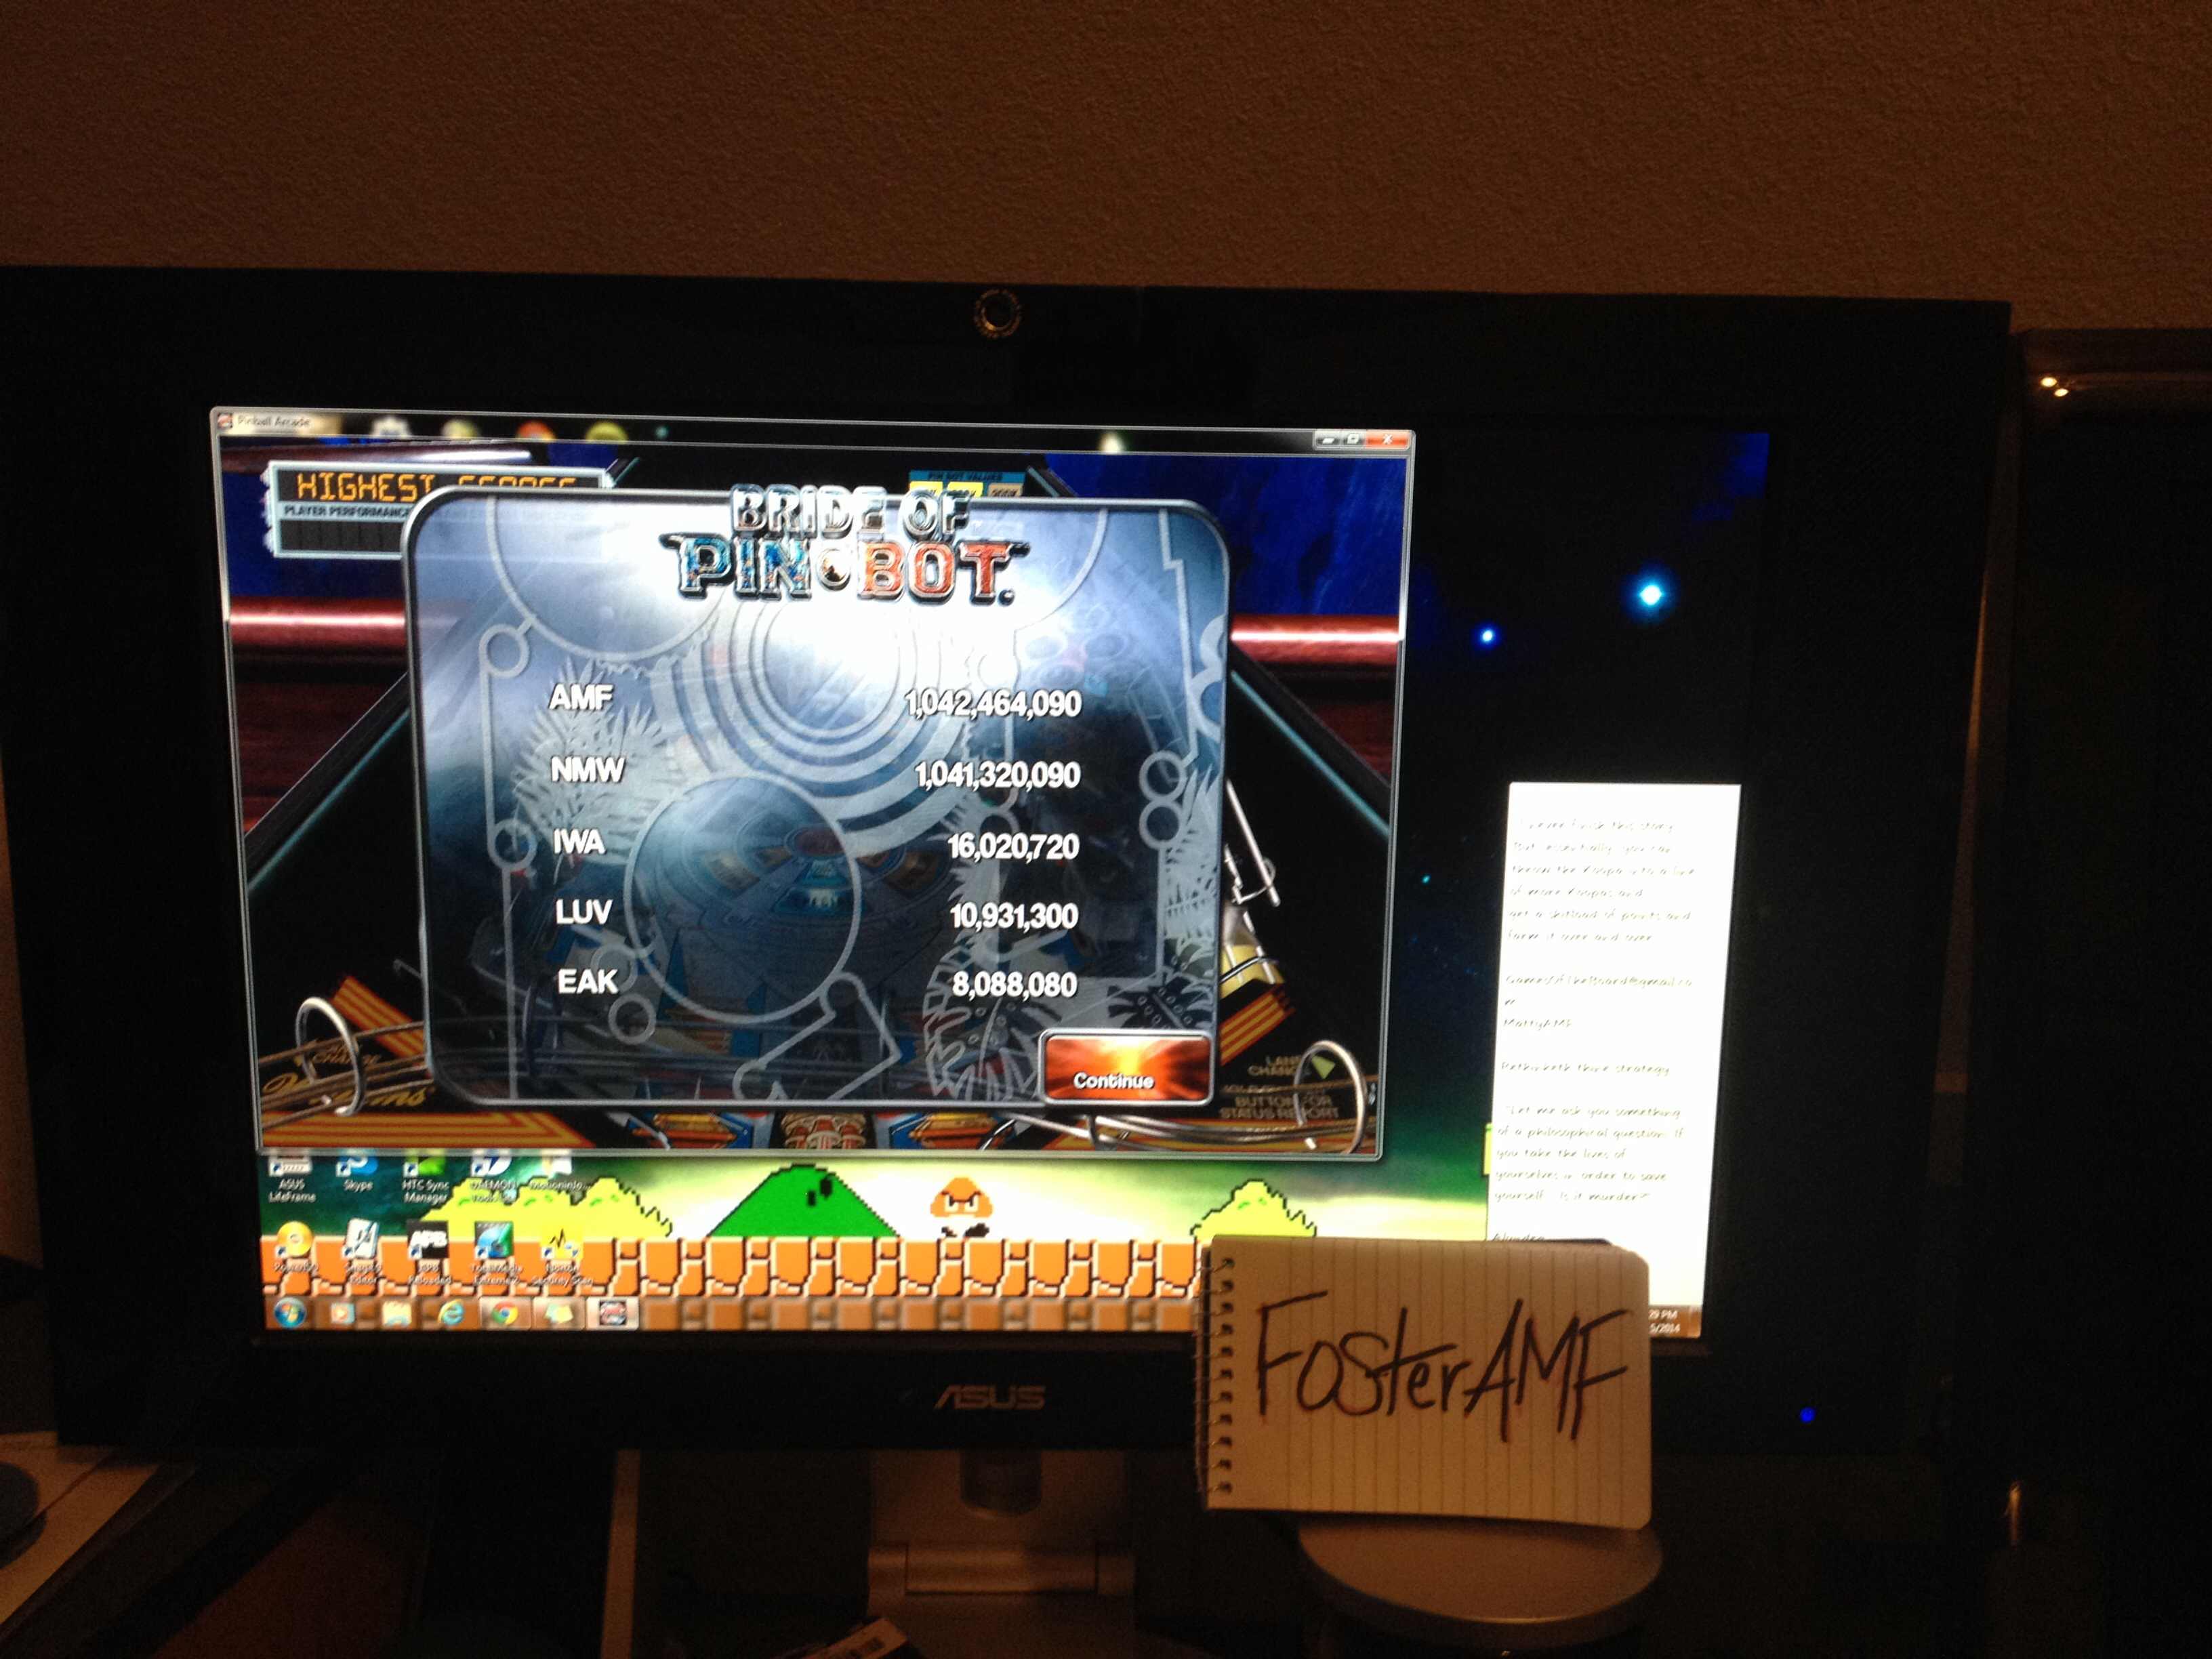 FosterAMF: Pinball Arcade: The Machine: Bride of Pin*Bot (PC) 1,042,464,090 points on 2014-05-15 23:27:08